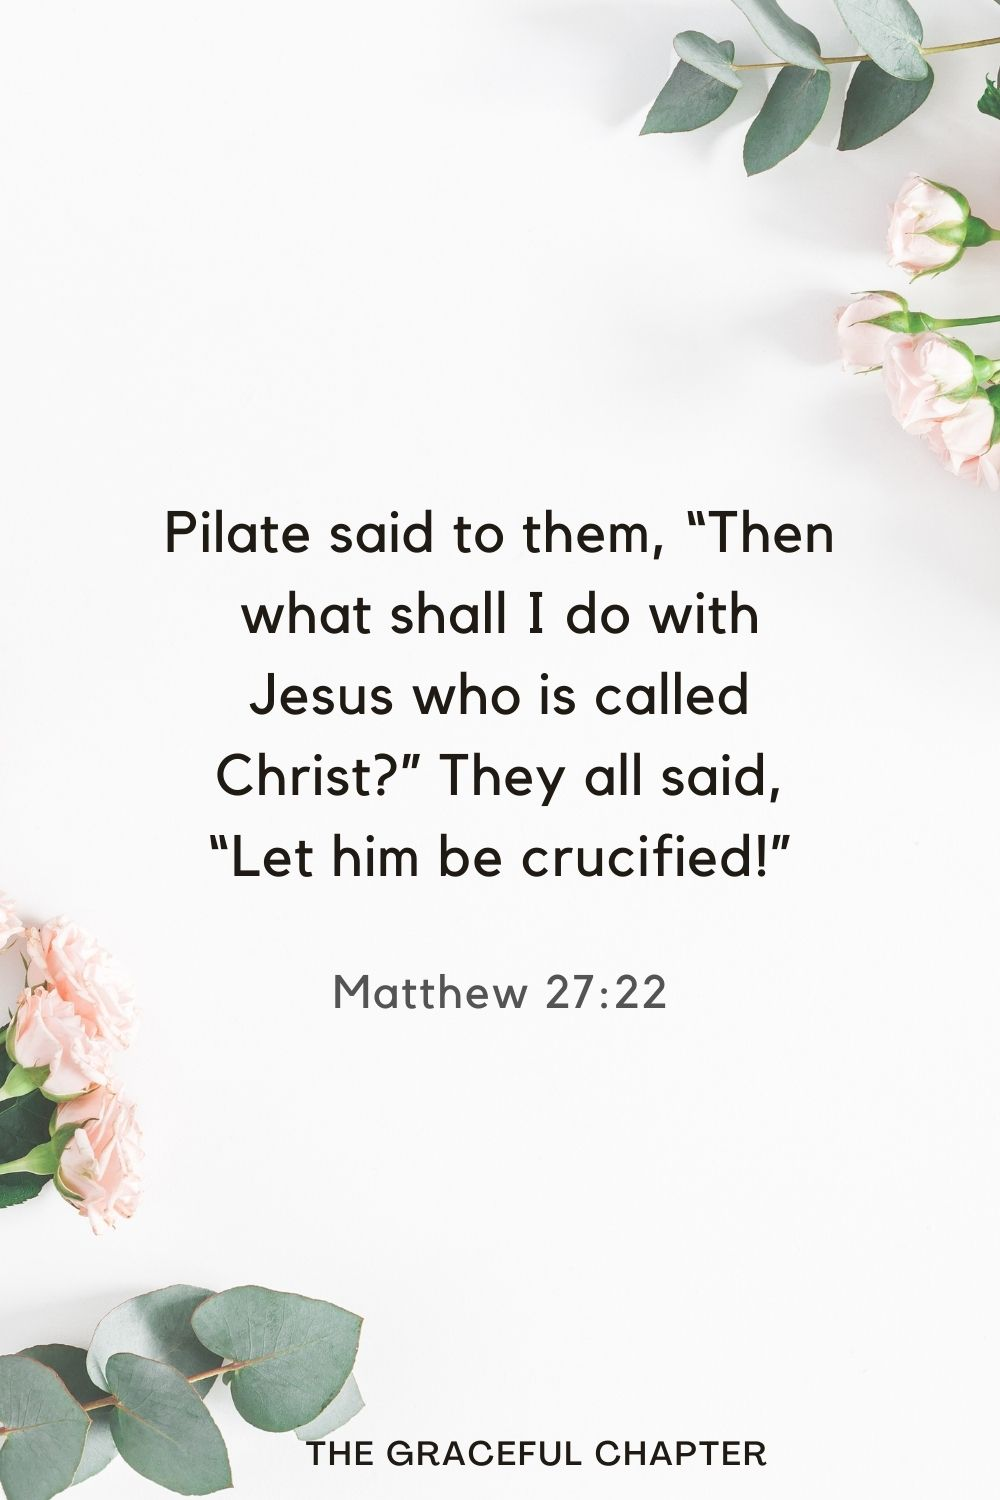 """Pilate said to them, """"Then what shall I do with Jesus who is called Christ?"""" They all said, """"Let him be crucified!"""" Matthew 27:22"""